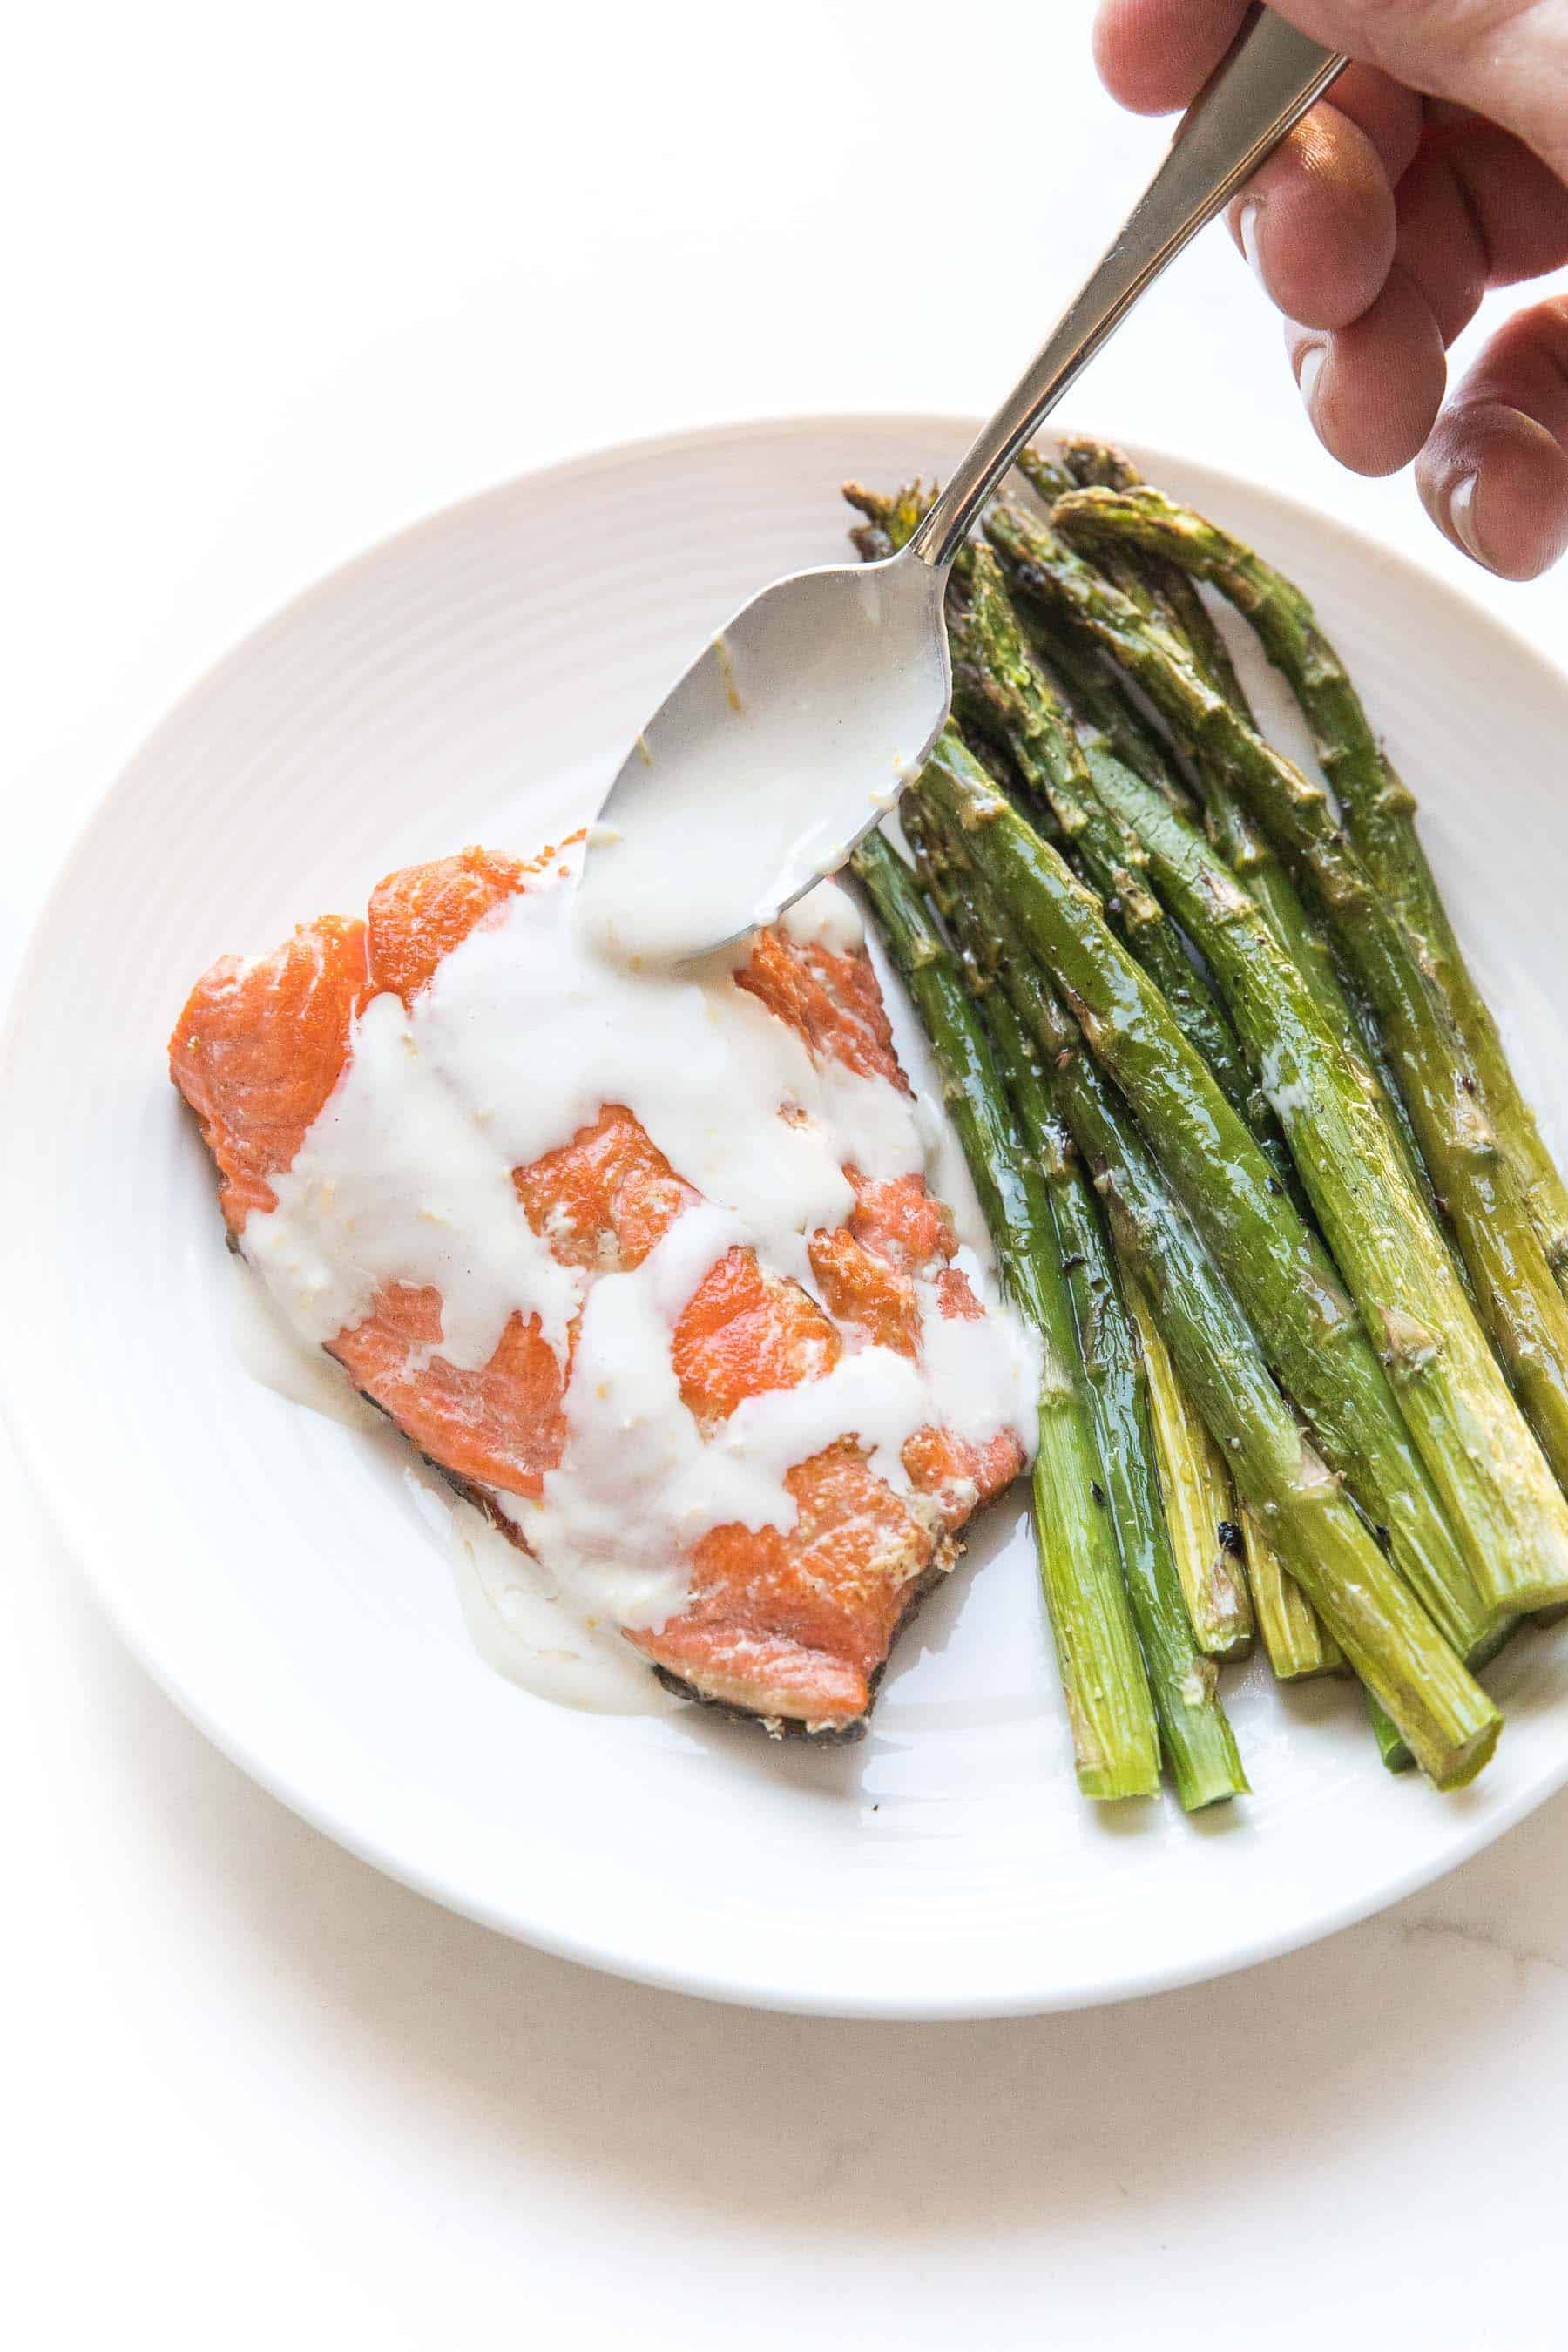 spoon drizzling Salmon + asparagus with a white creamy coconut tahini sauce on a white plate and background